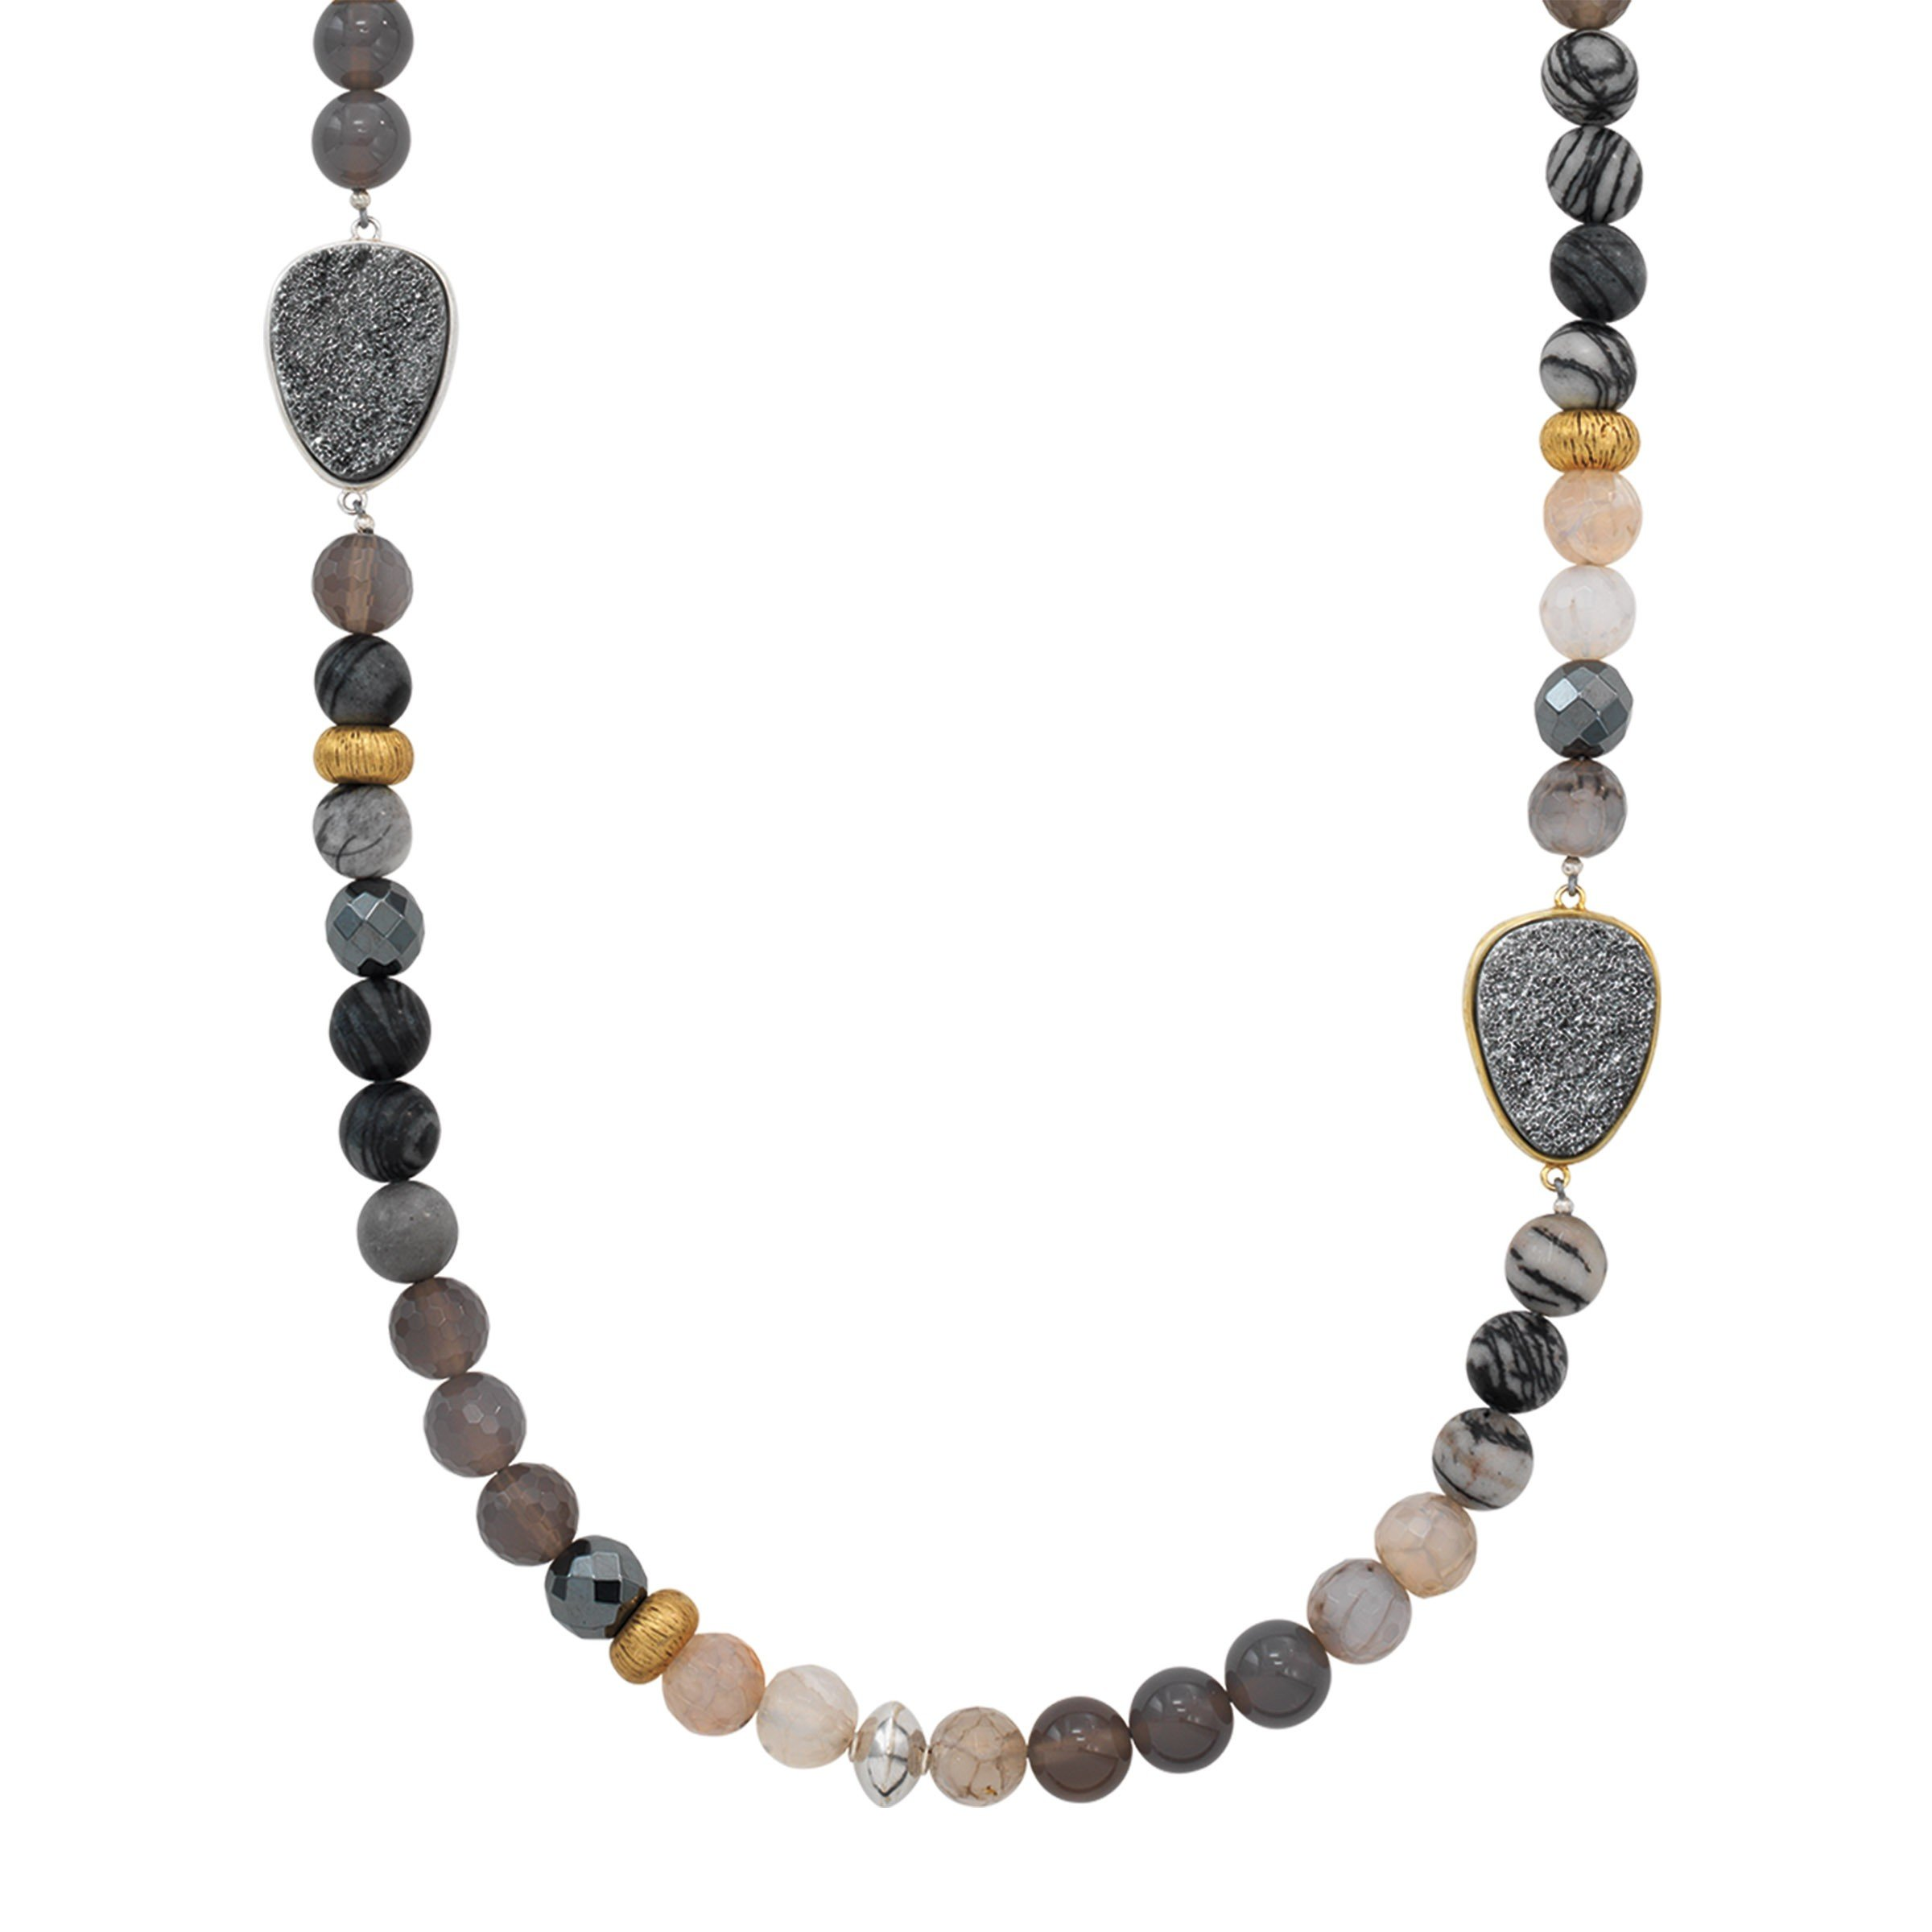 Silpada 'Ode To Geode' Natural Agate, Druzy, Hematite Necklace in Sterling Silver & Brass